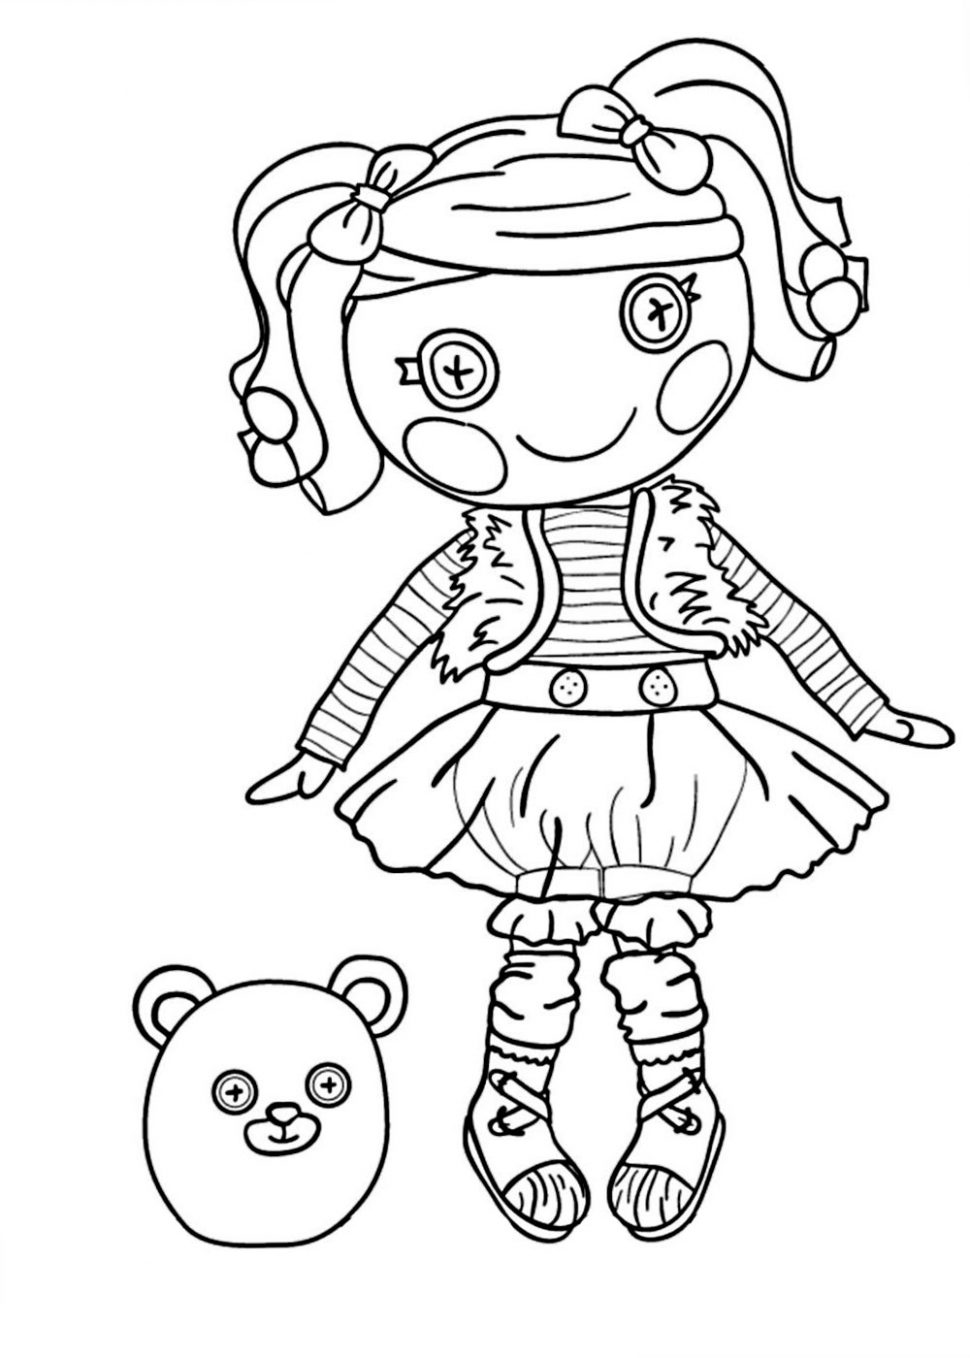 970x1358 Lalaloopsy Coloring Pages To Print For Girls Free L Prixducommerce